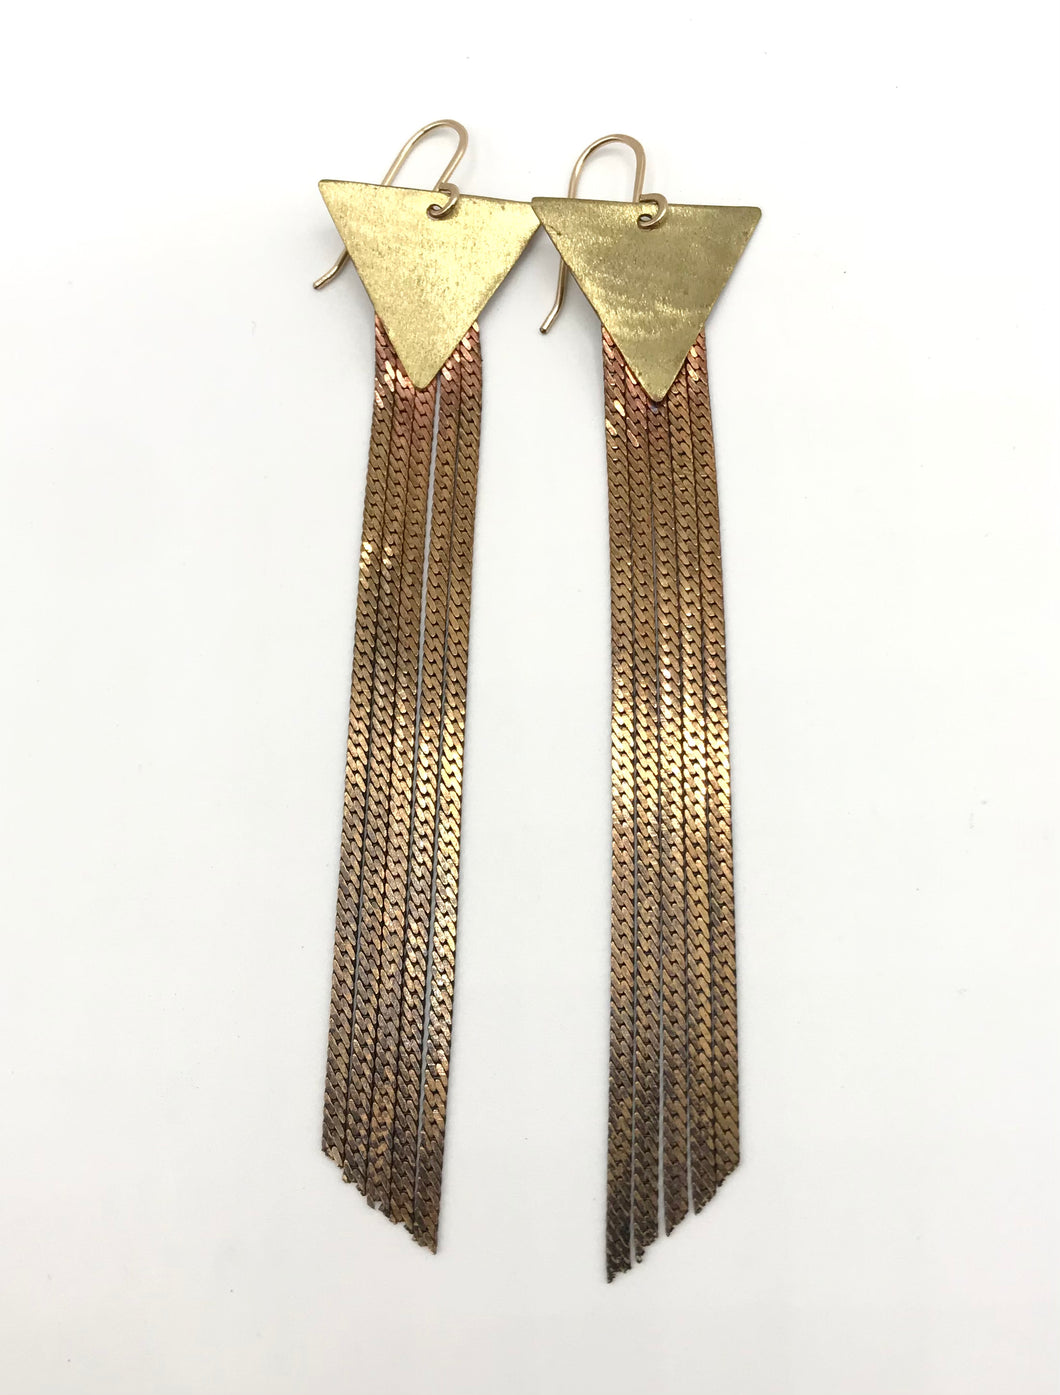 Brass stardust earrings